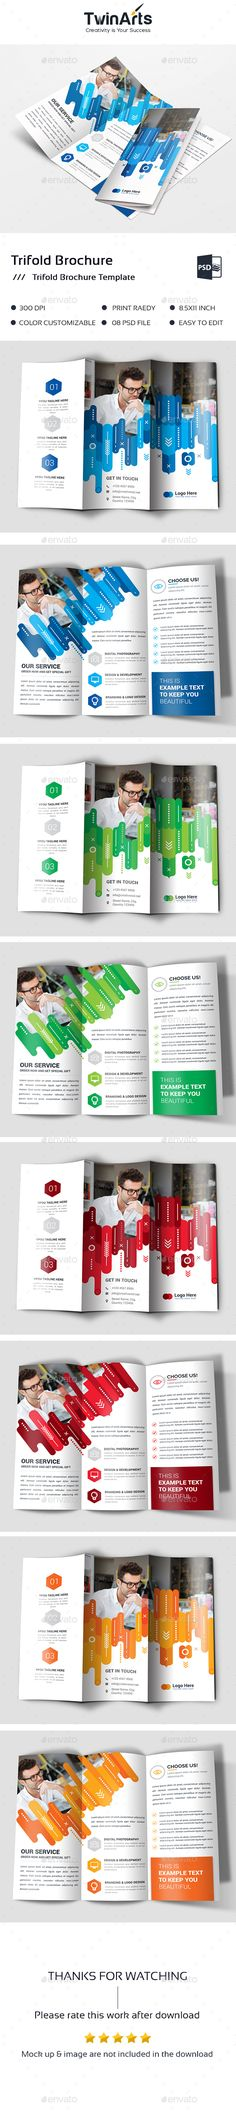 College/University Prospectus - Corporate Brochure Template InDesign